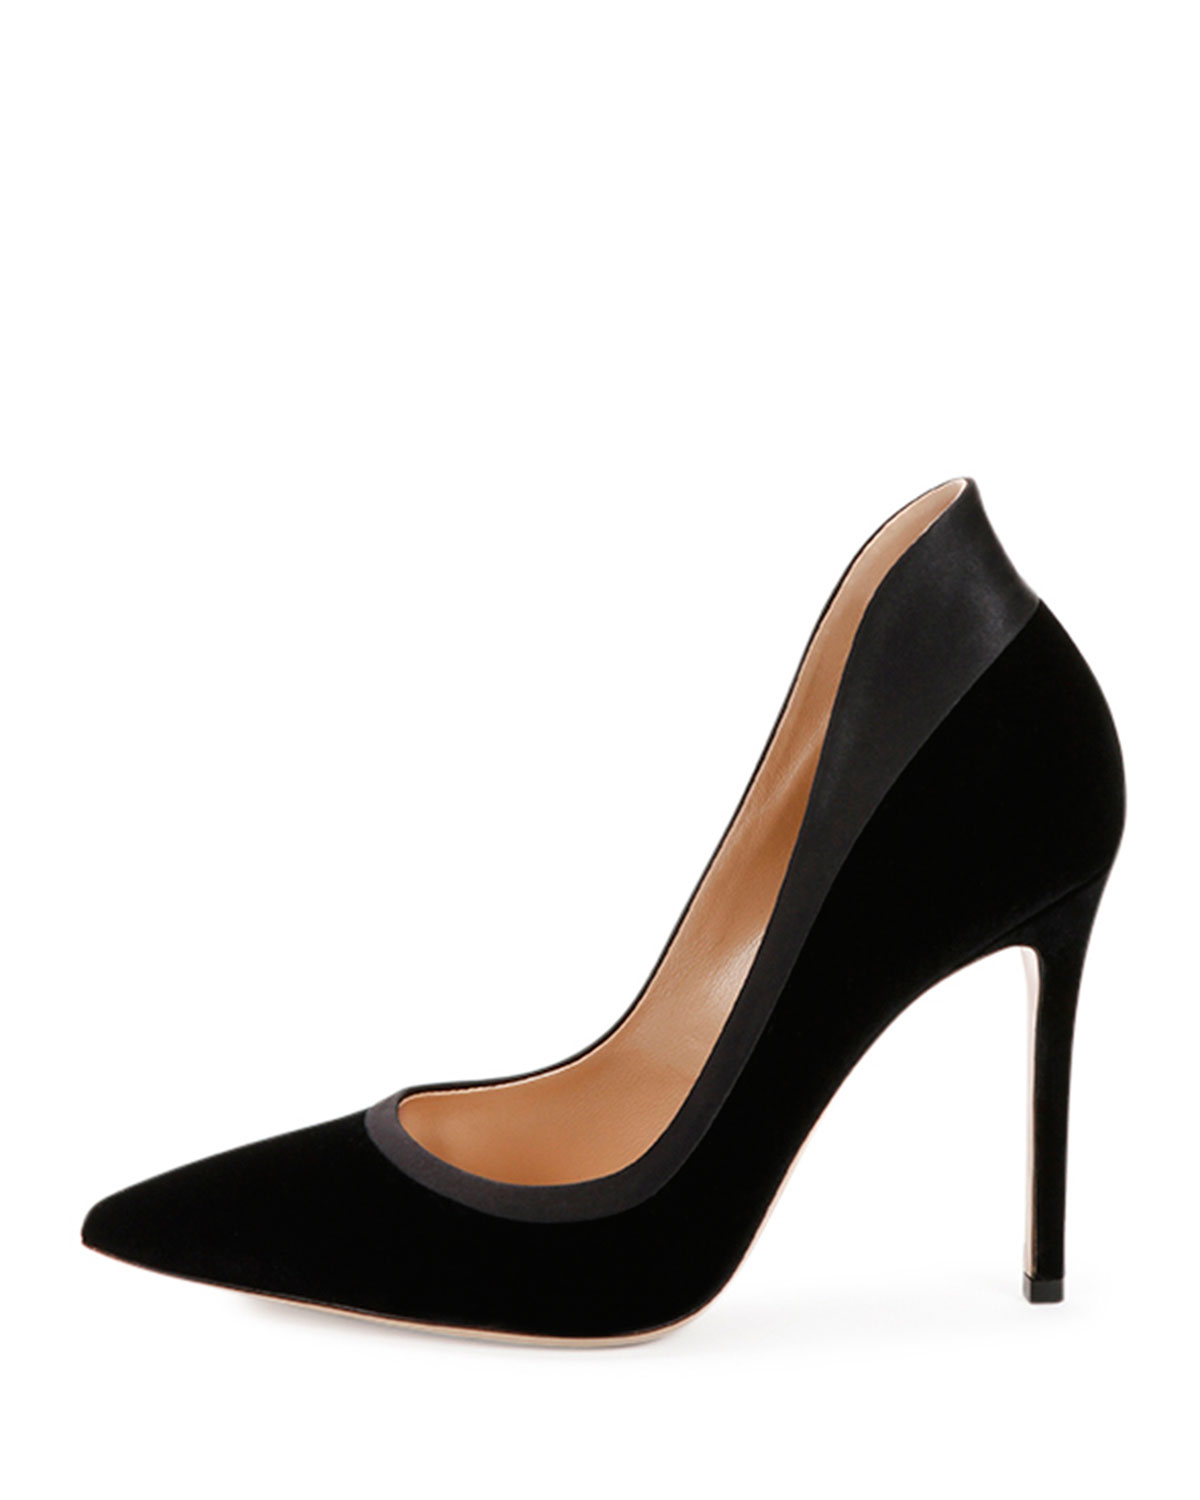 Gianvito Rossi Satin Platform Pumps discount best prices sale best wholesale new styles cheap online discount authentic online 2fLLPE